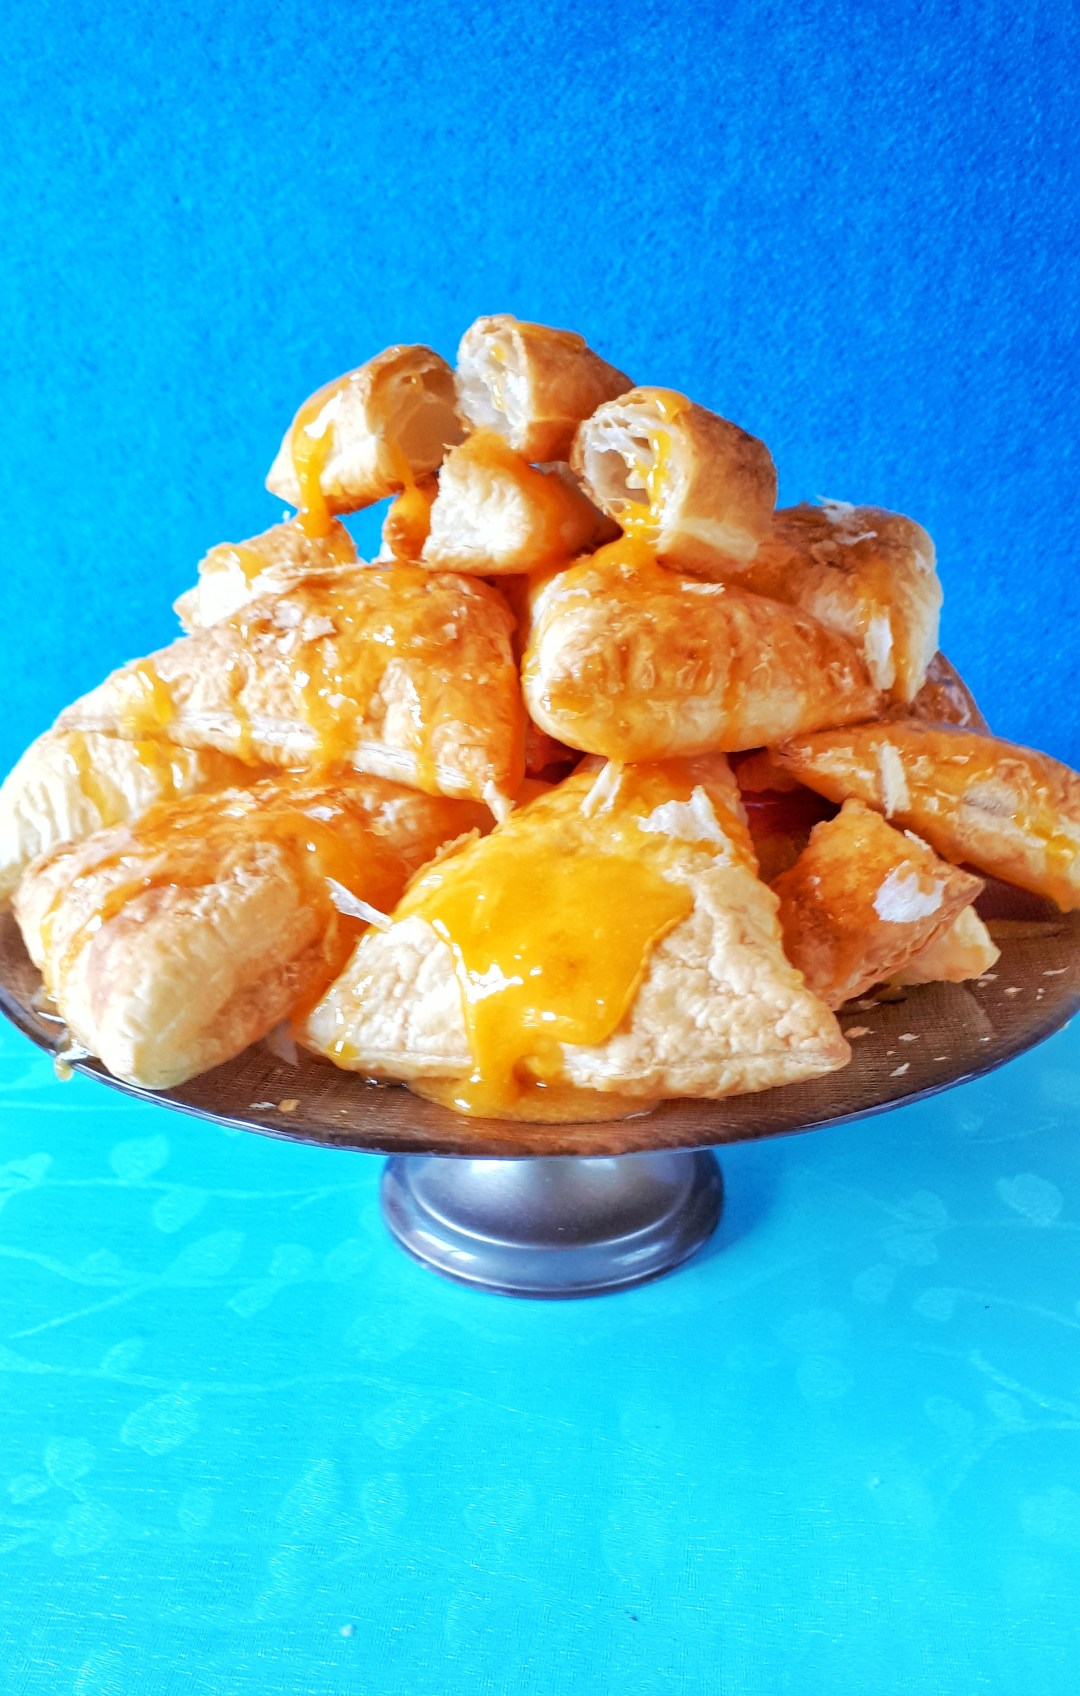 These puff pastry turnovers made with frozen puff pastry are so easy and quick to make. The richness of the eggs cream makes them unforgettable !